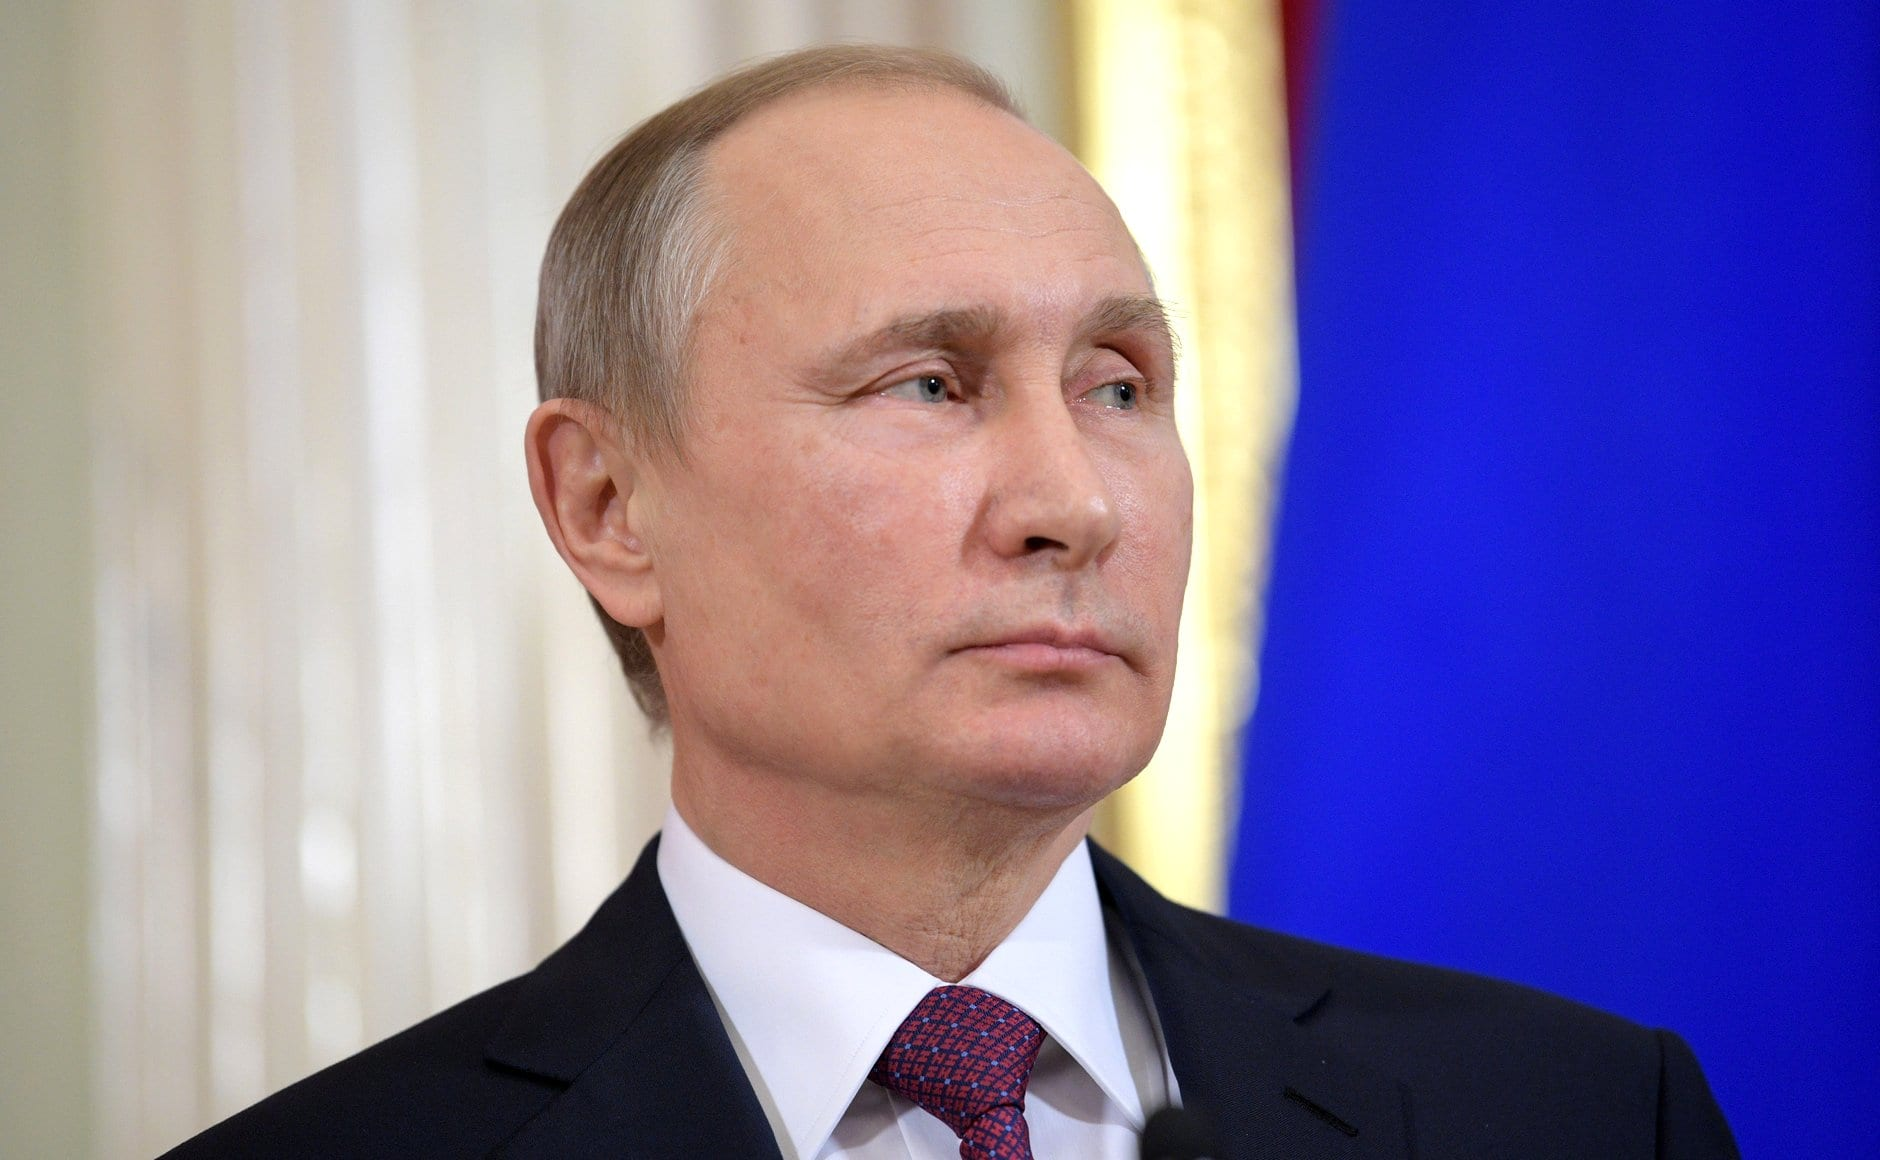 Vladimir Putin S Net Worth 2020 Is He The Richest Man On Earth Foreign Policy